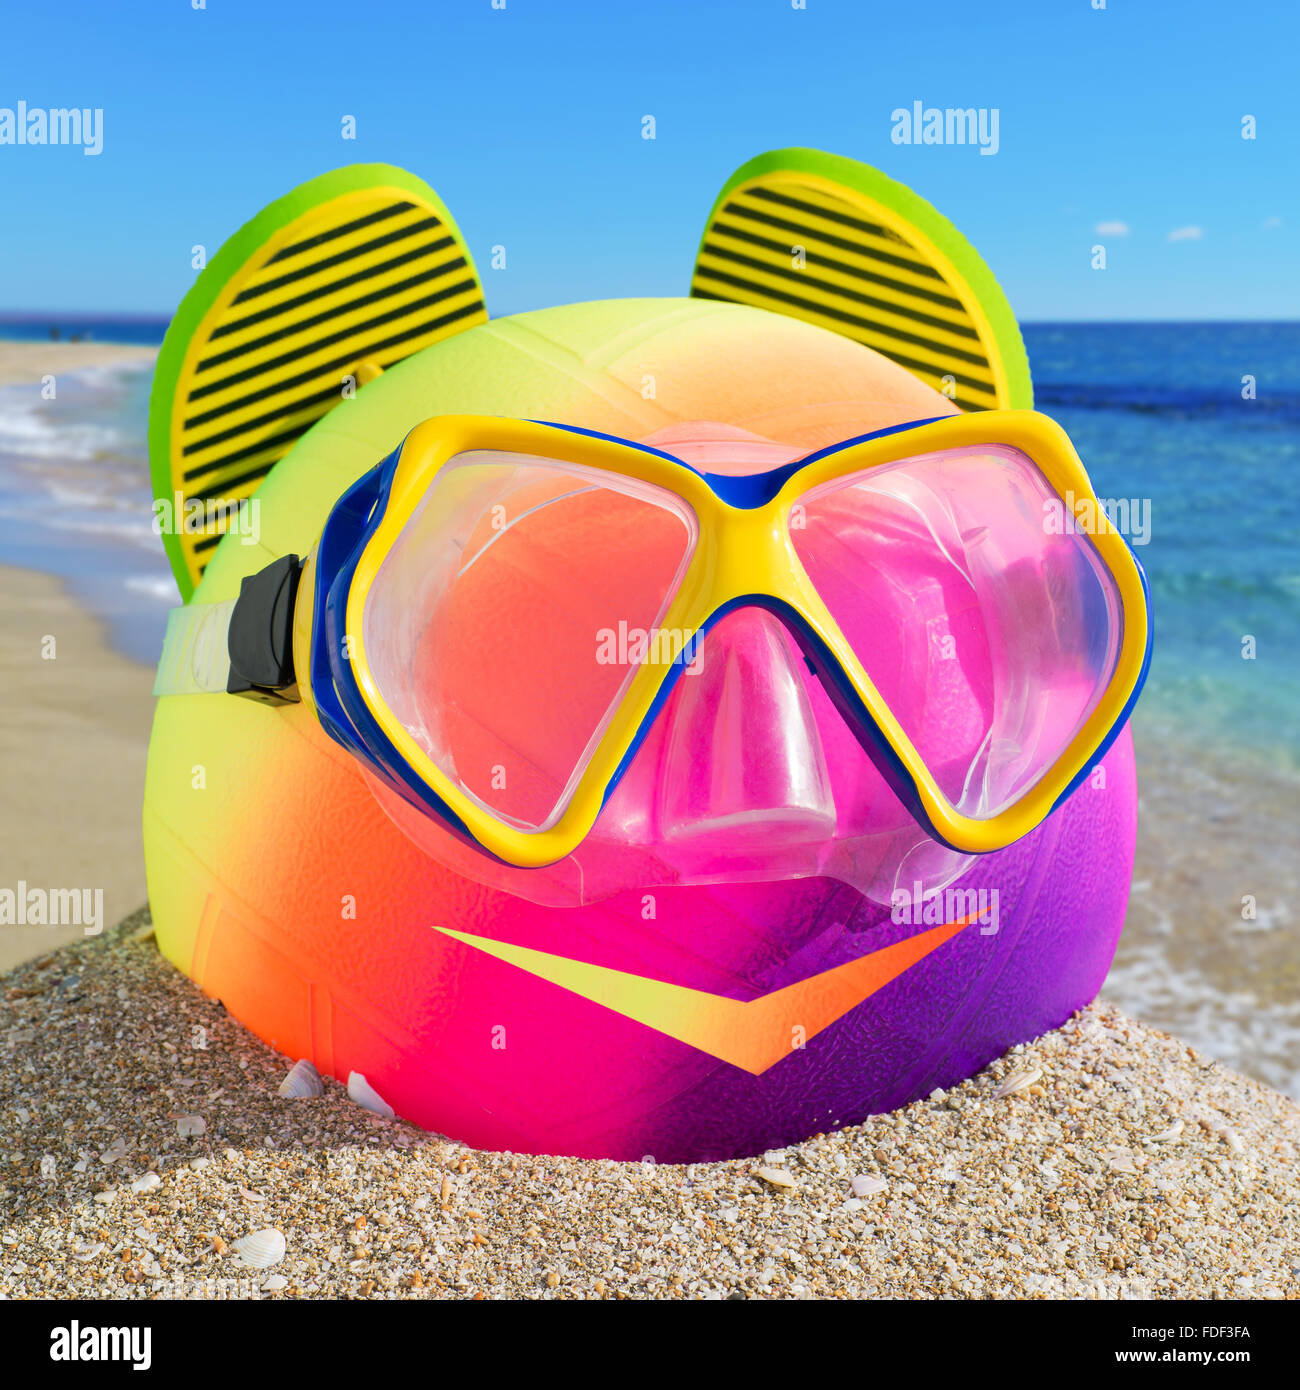 Smiling little man of beach accessories. Ball, flip-flop and diving mask on the beach against a blue sea and sky. - Stock Image